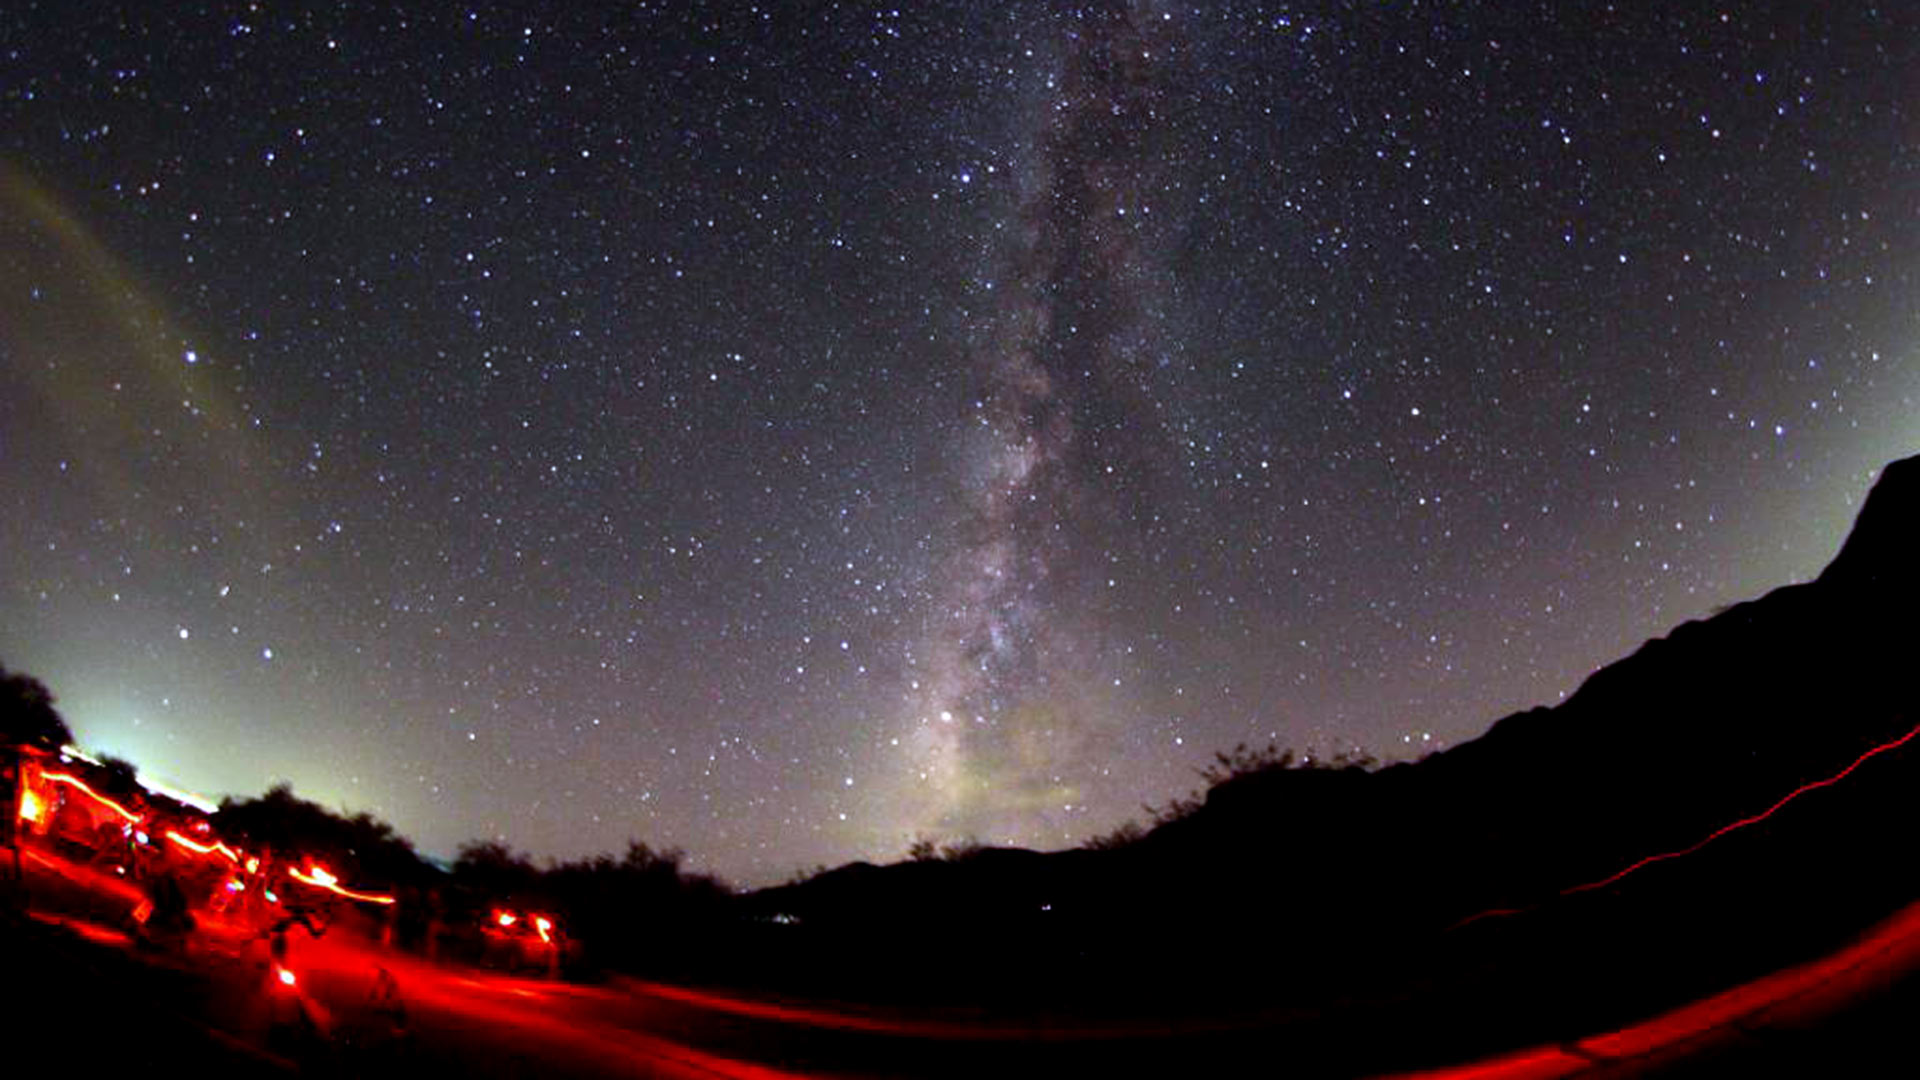 Star-gazing at Kartchner Caverns State Park.